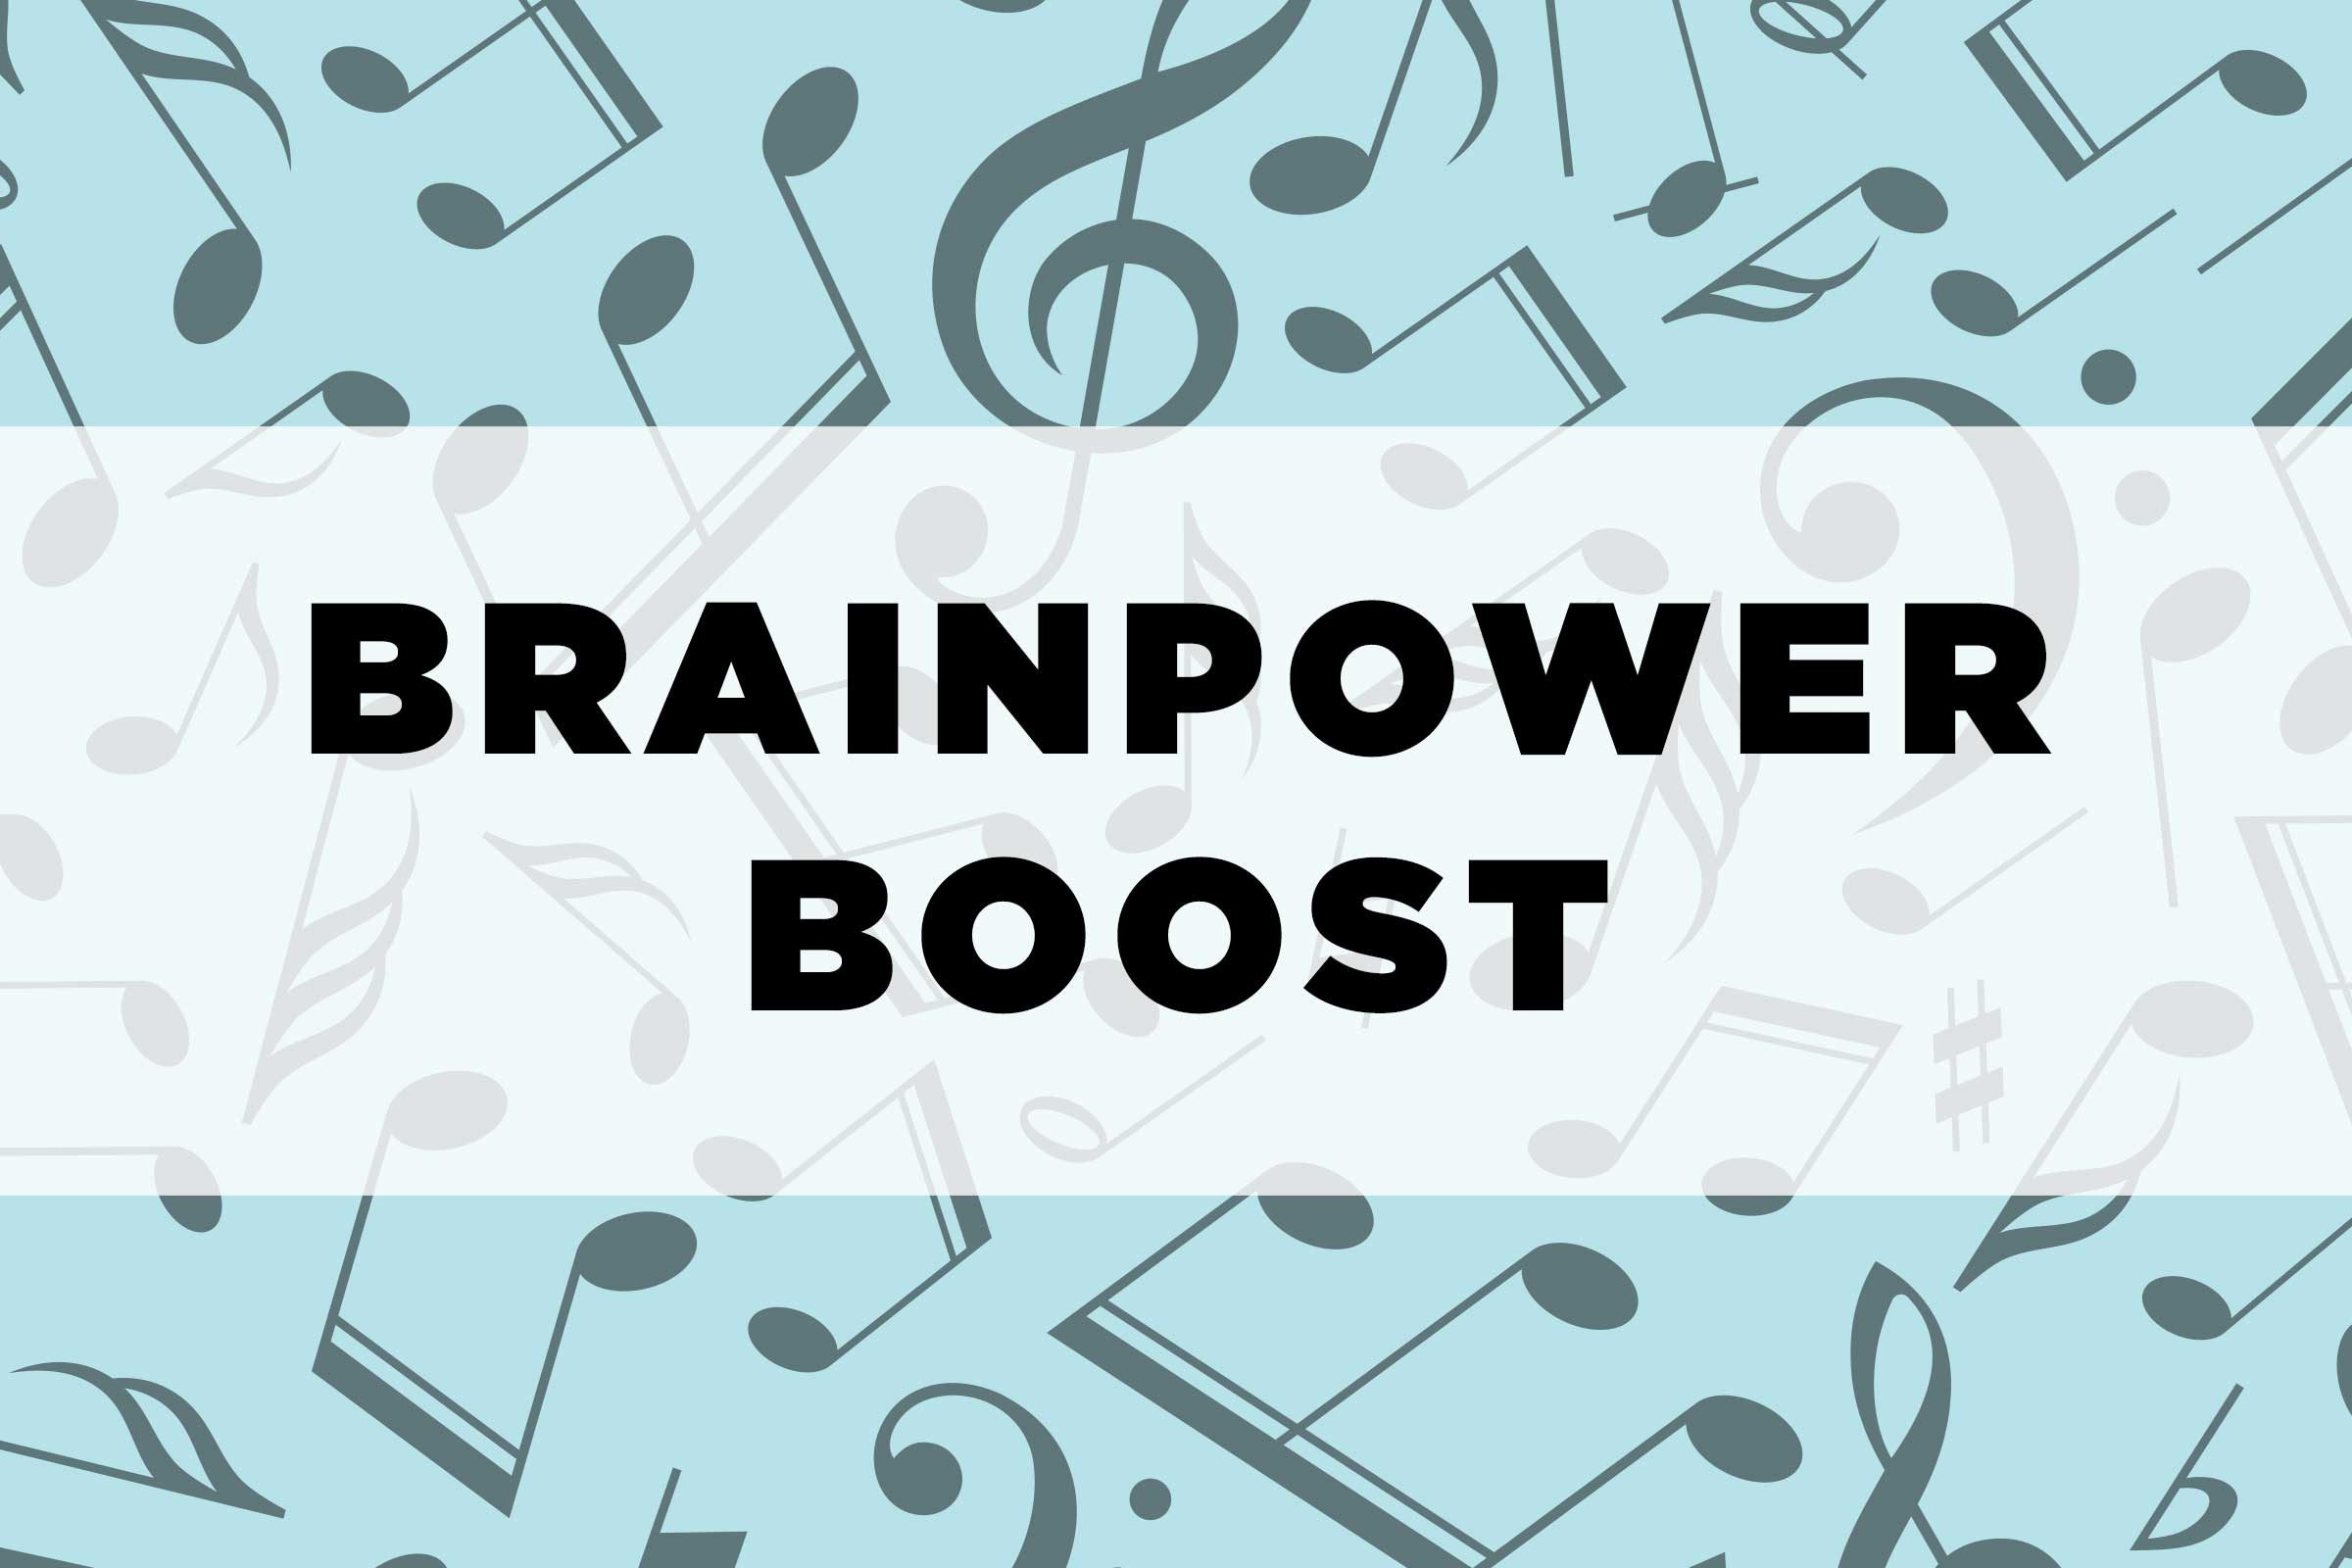 Classical Music Effects on the Brain and Body | Reader's Digest